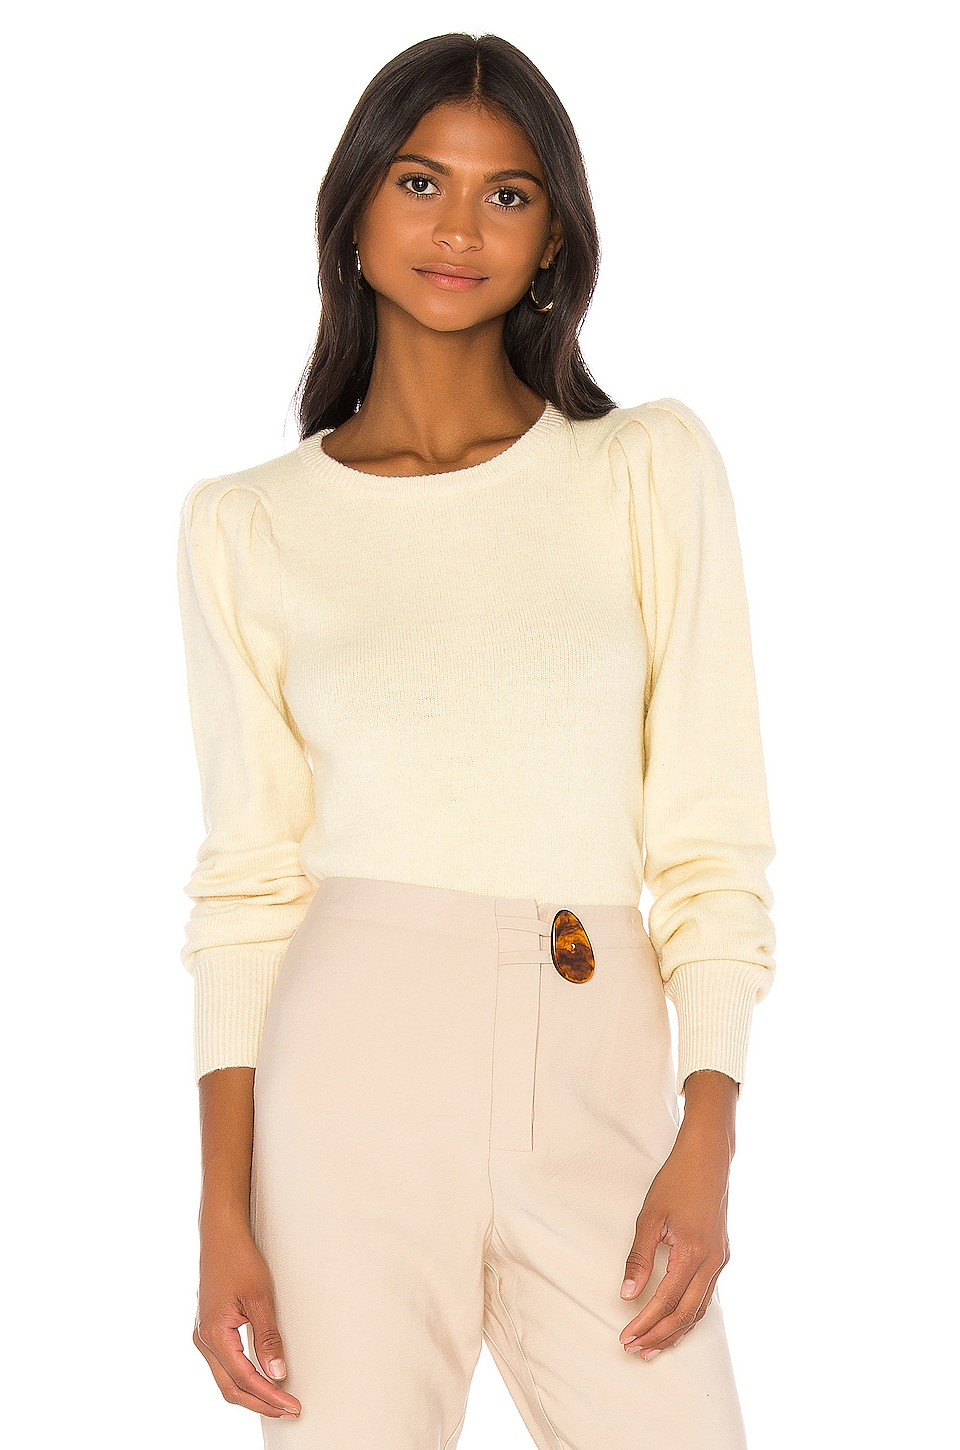 L'Academie The Ashley Sweater in Light Yellow